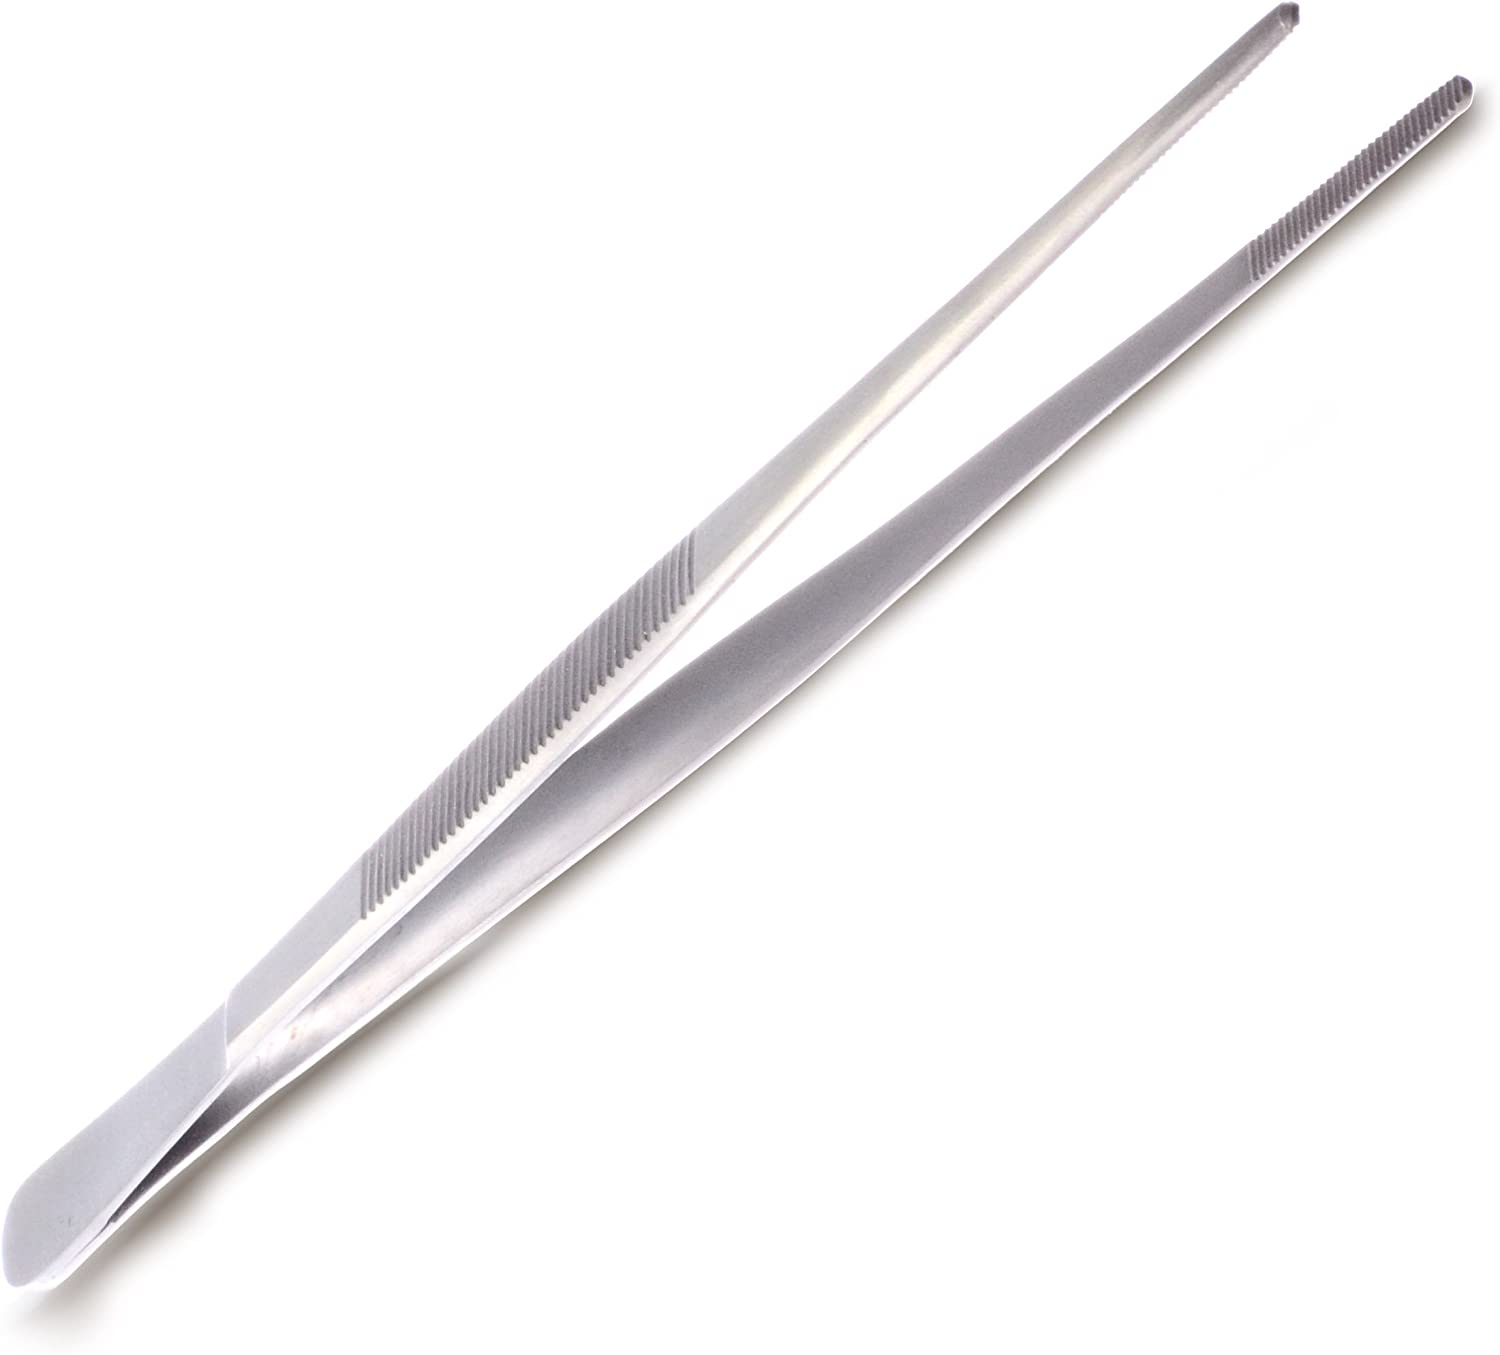 Specialty Stainless Steel Kitchen Seafood & Surgical Tweezer Food Tongs Tool - 8 Inch - Precision Serrated Tips